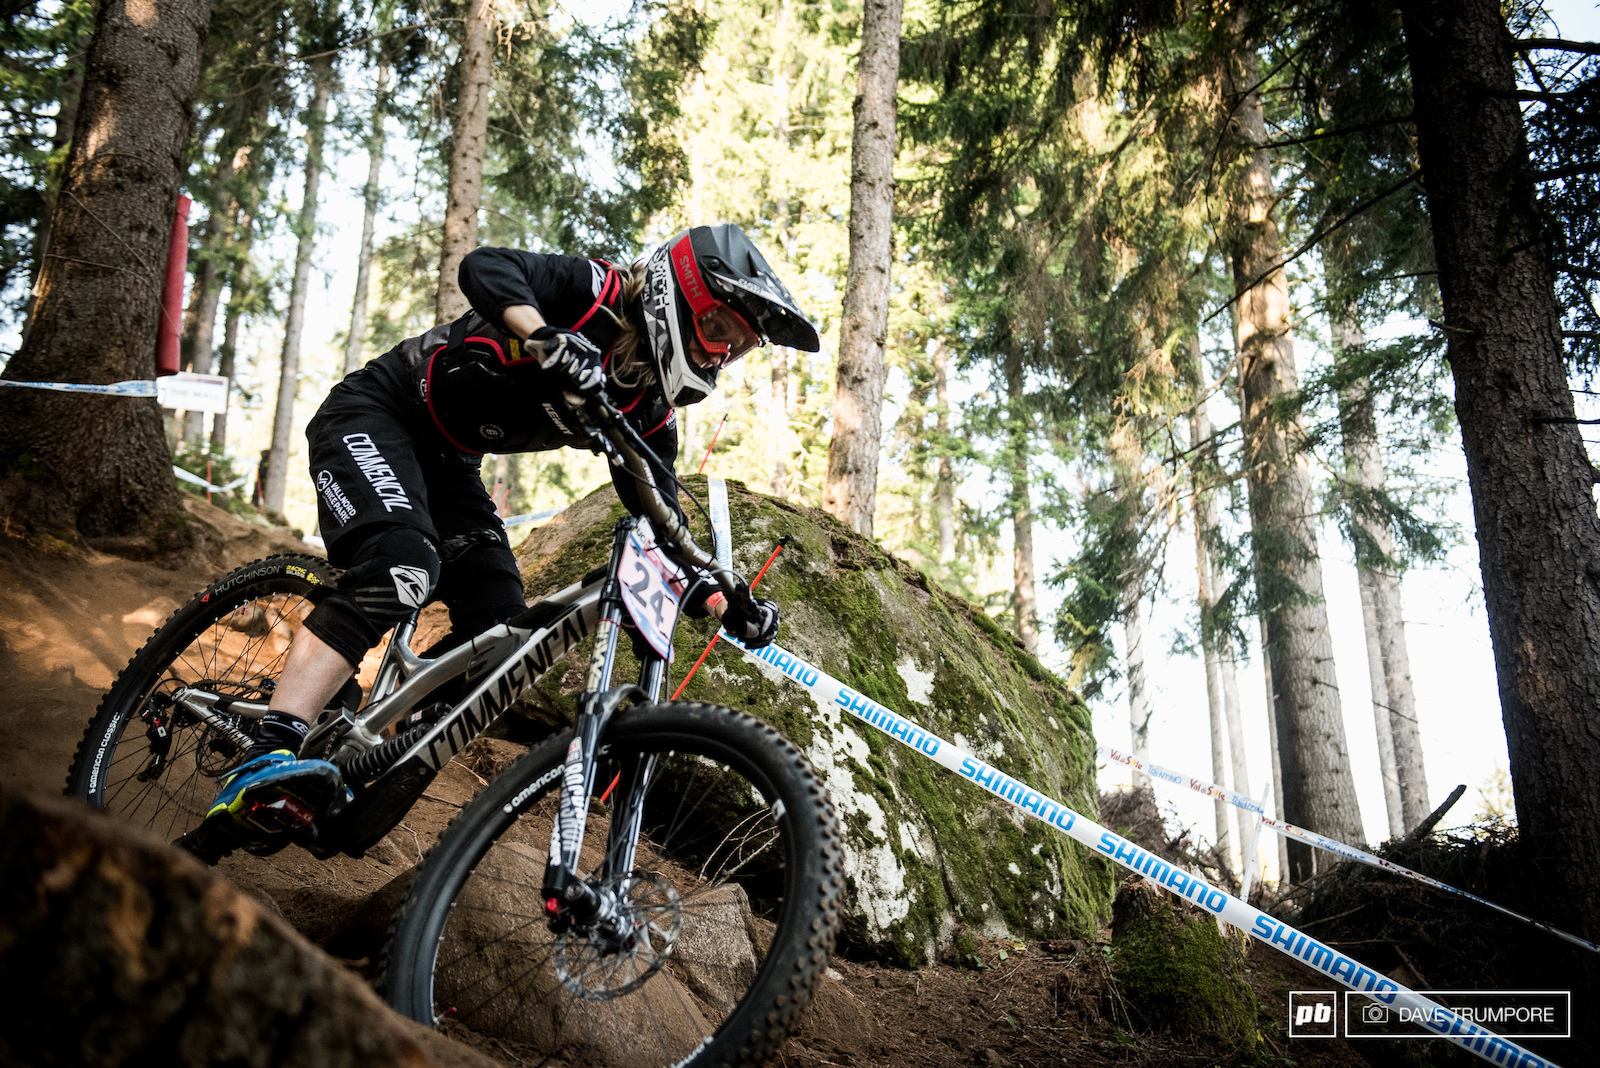 EWS World Champion Cecile Ravanel would finish in 9th after being held up trying to pass the rider who started in front of her.